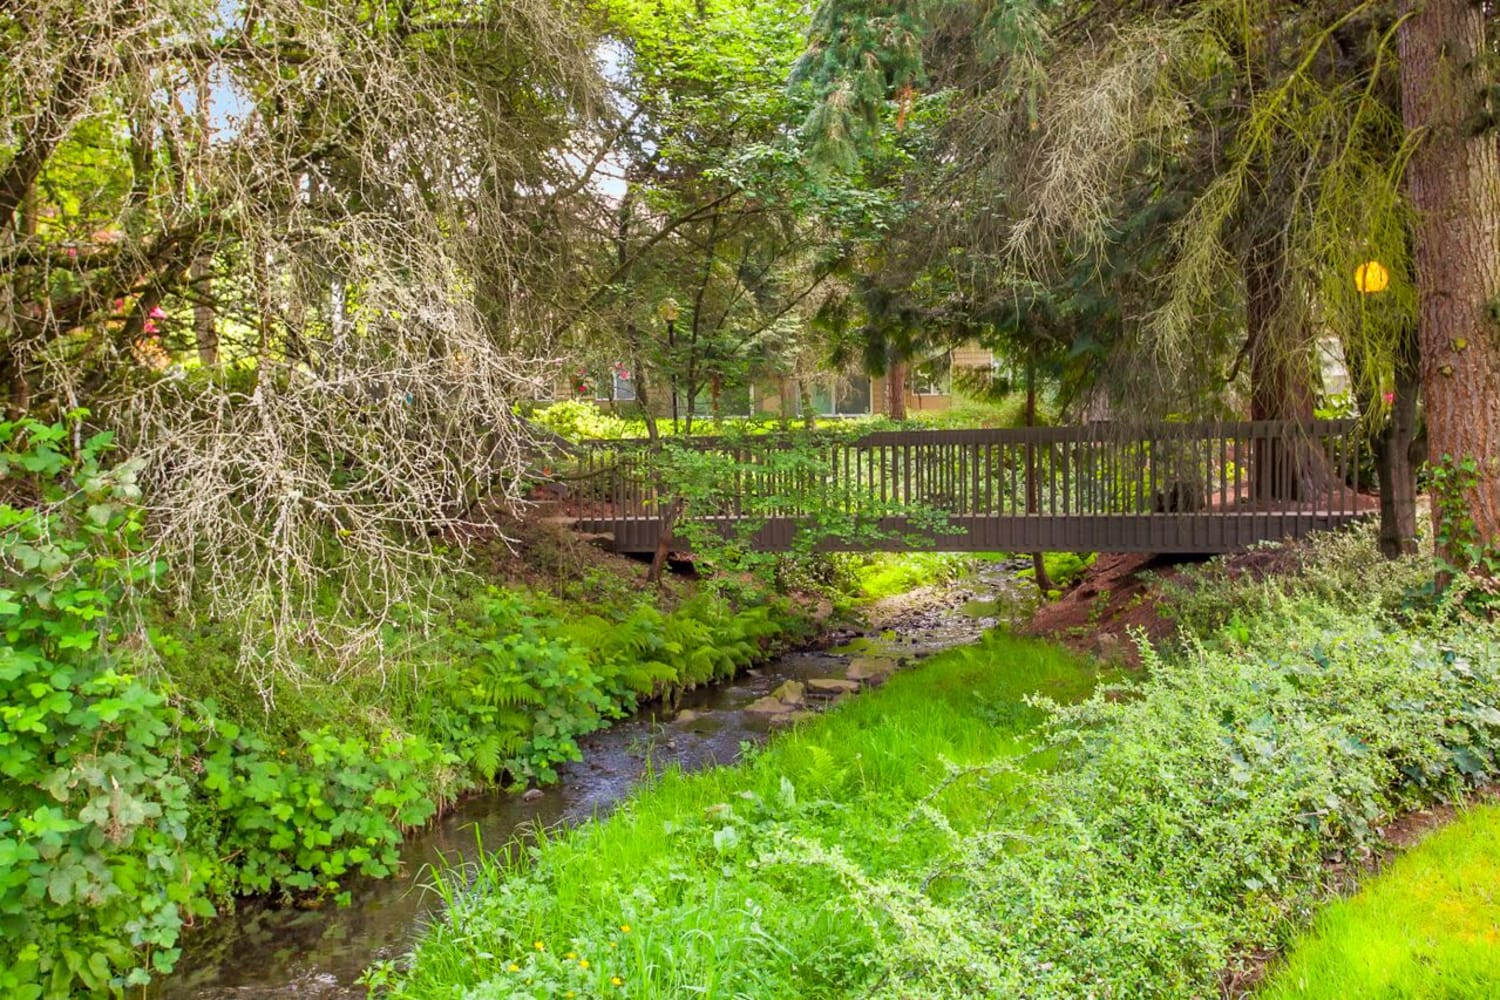 Walking bridge through nature at The VUE in Kirkland, Washington